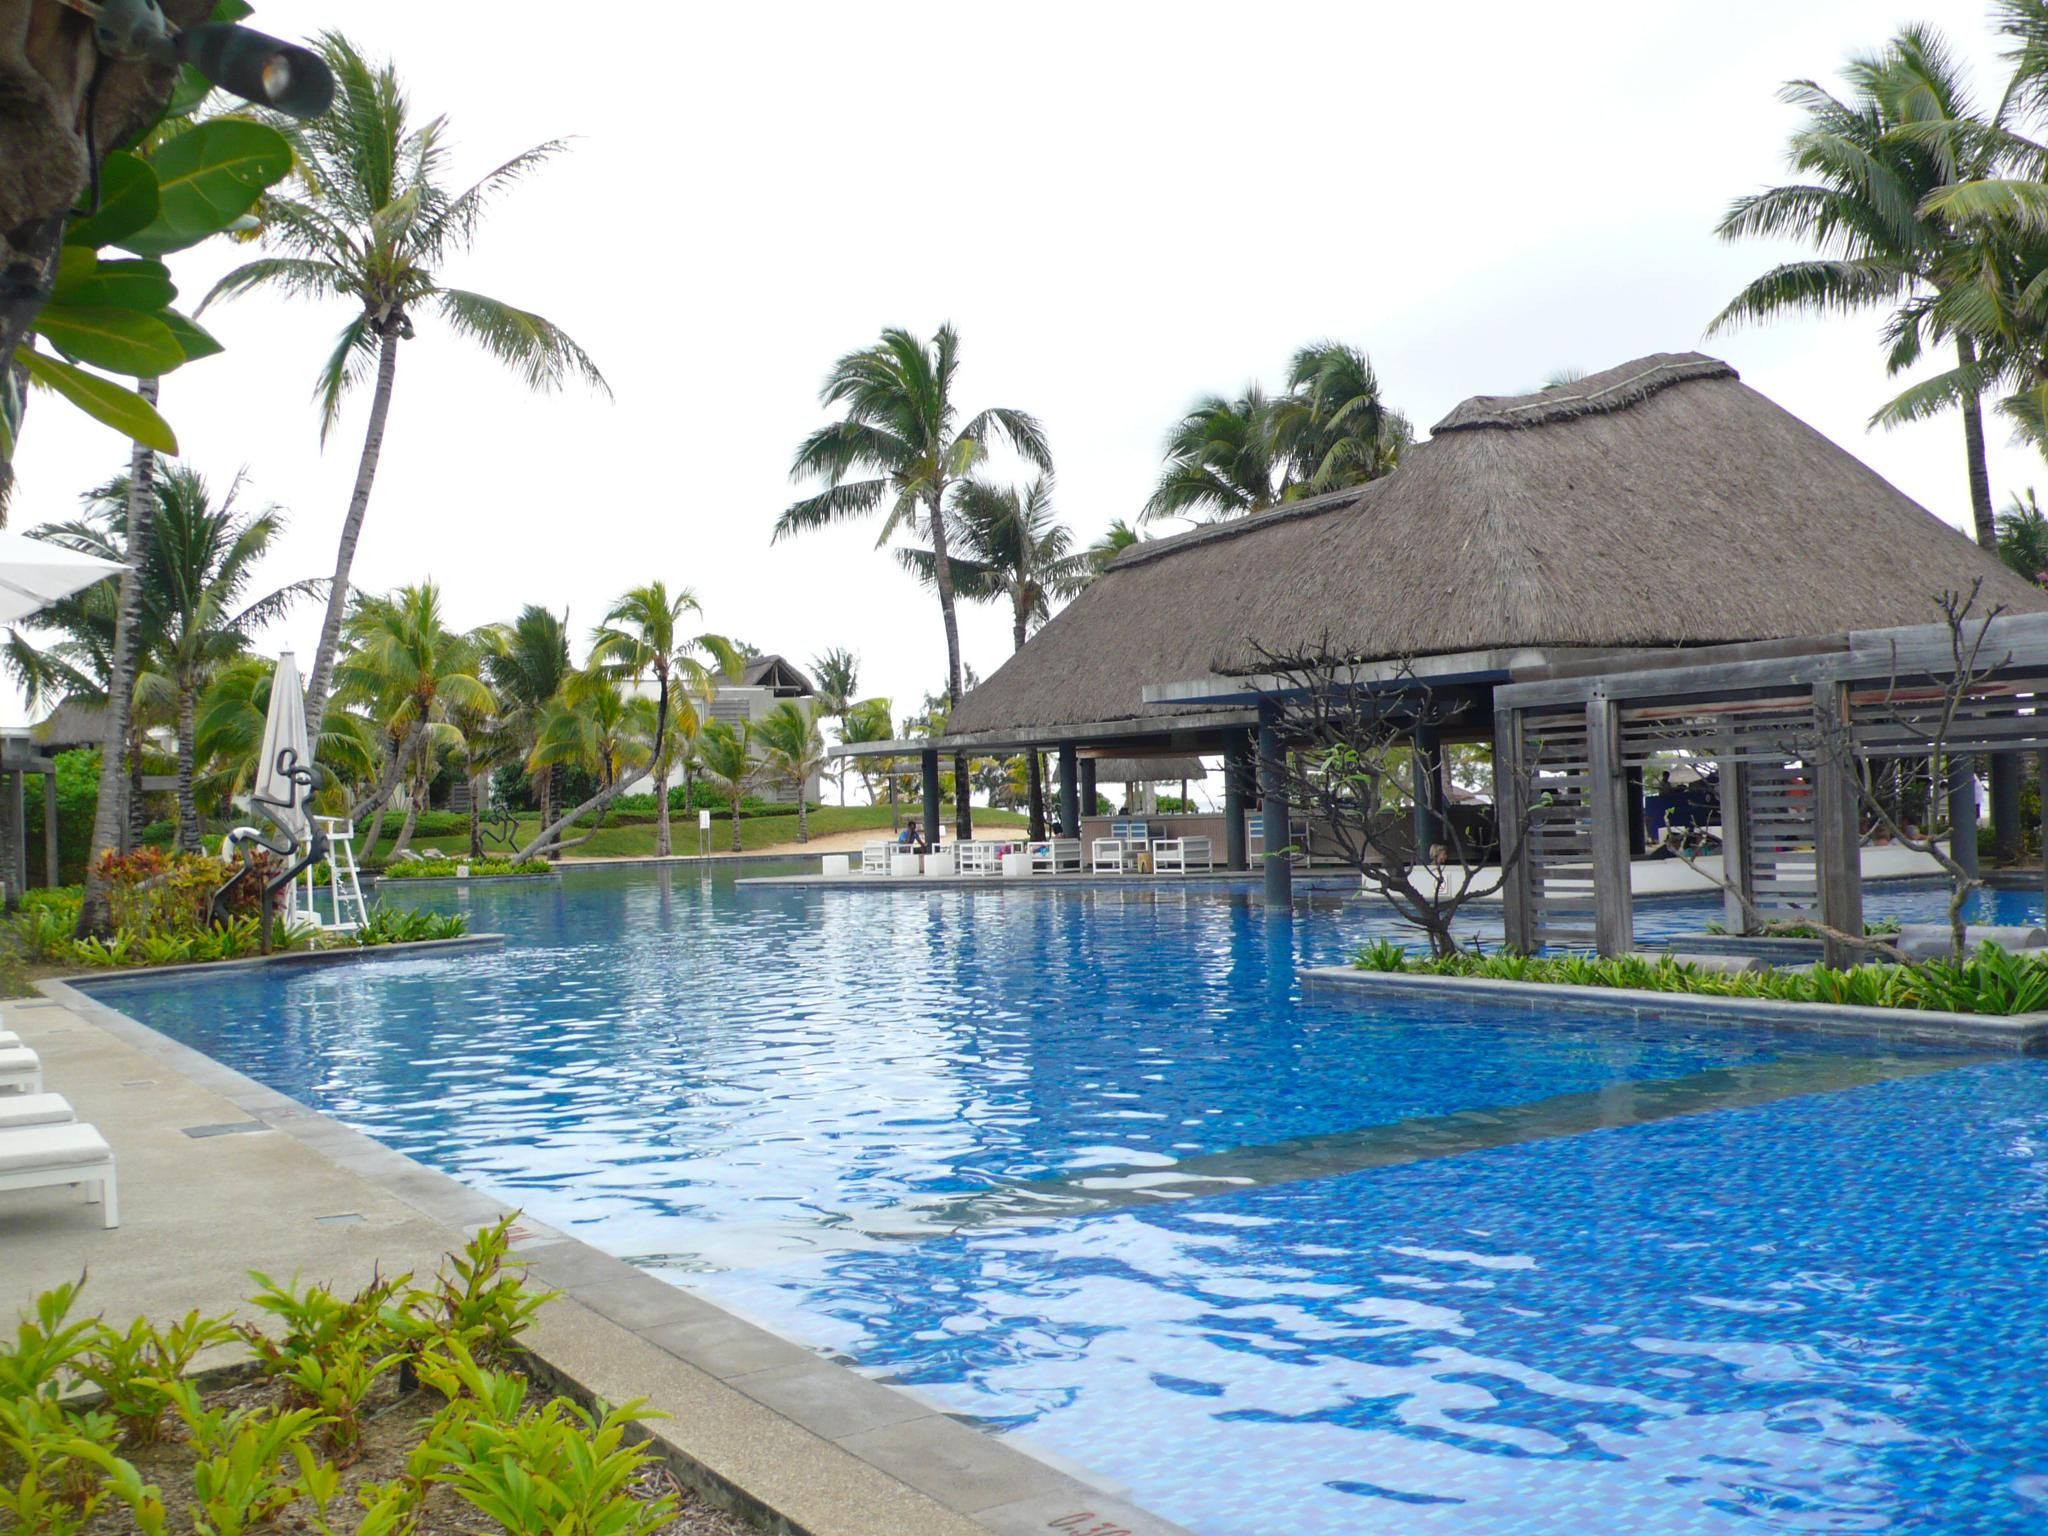 Longbeach hotel , Mauritius by JanetFernandes